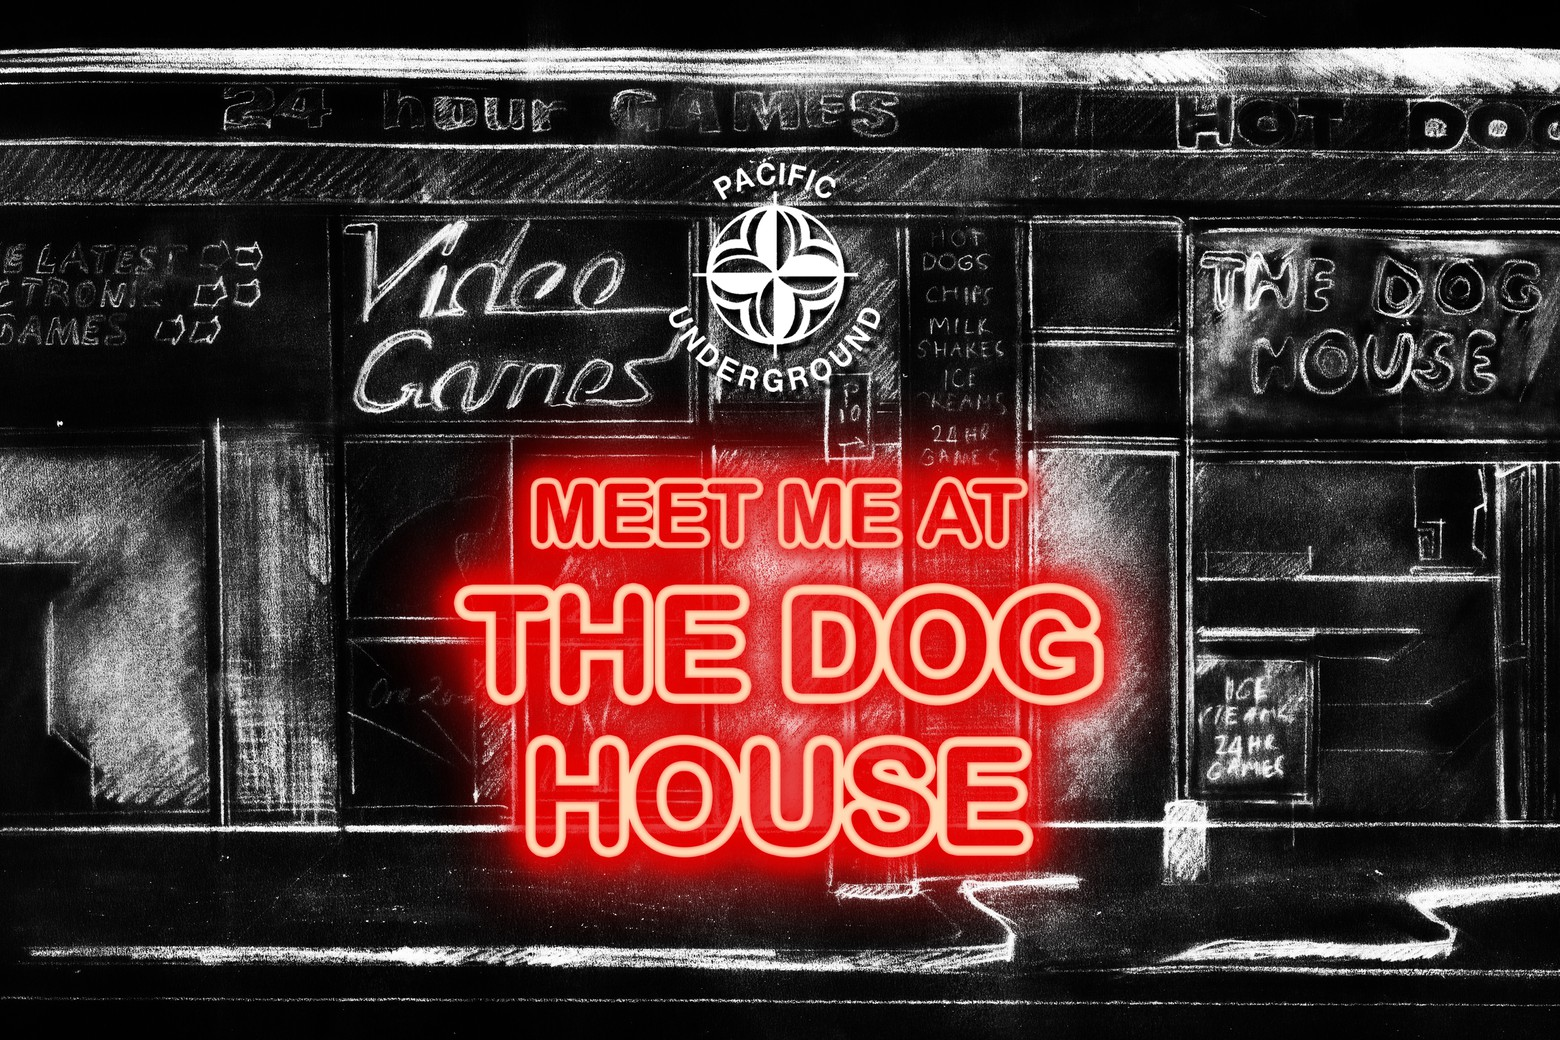 Meet me at The Dog House